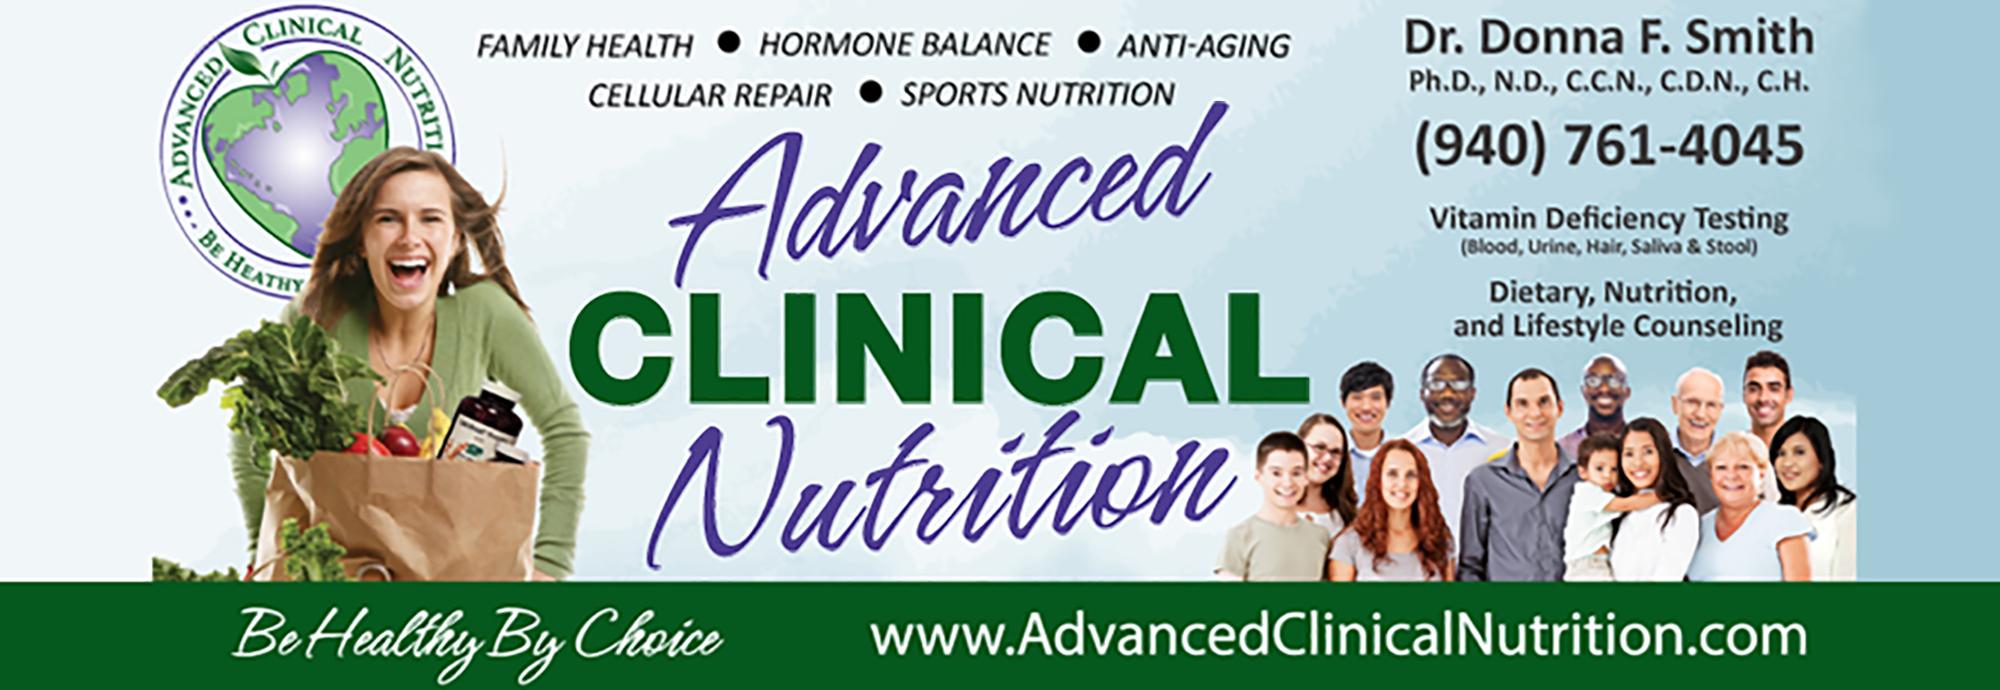 Advanced Clinical Nutrition Banner